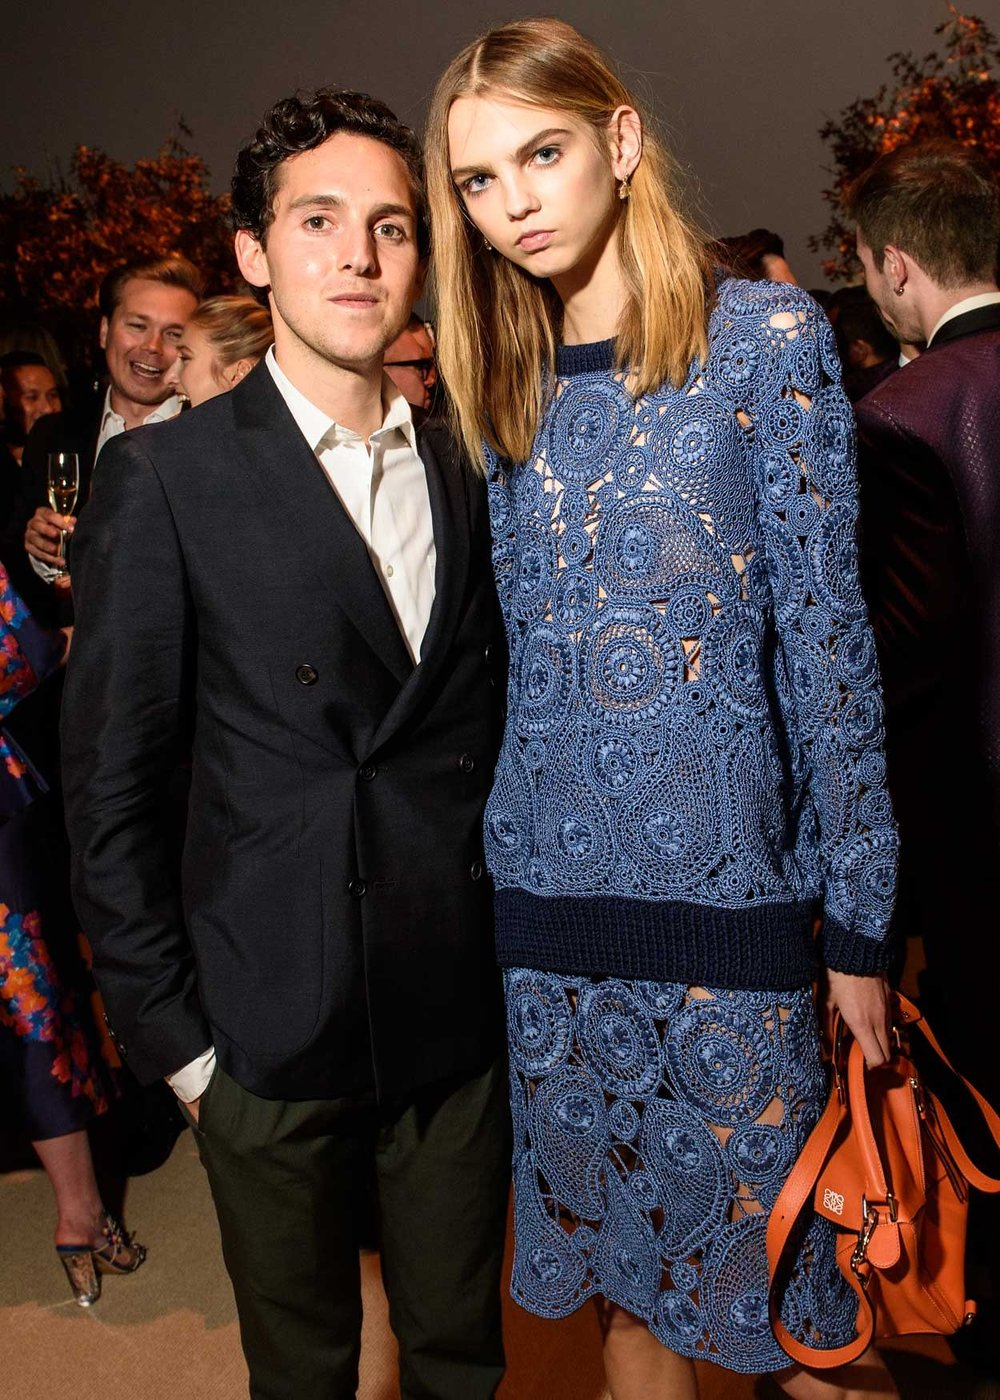 ALEX ORLEY AND MOLLY BAIR